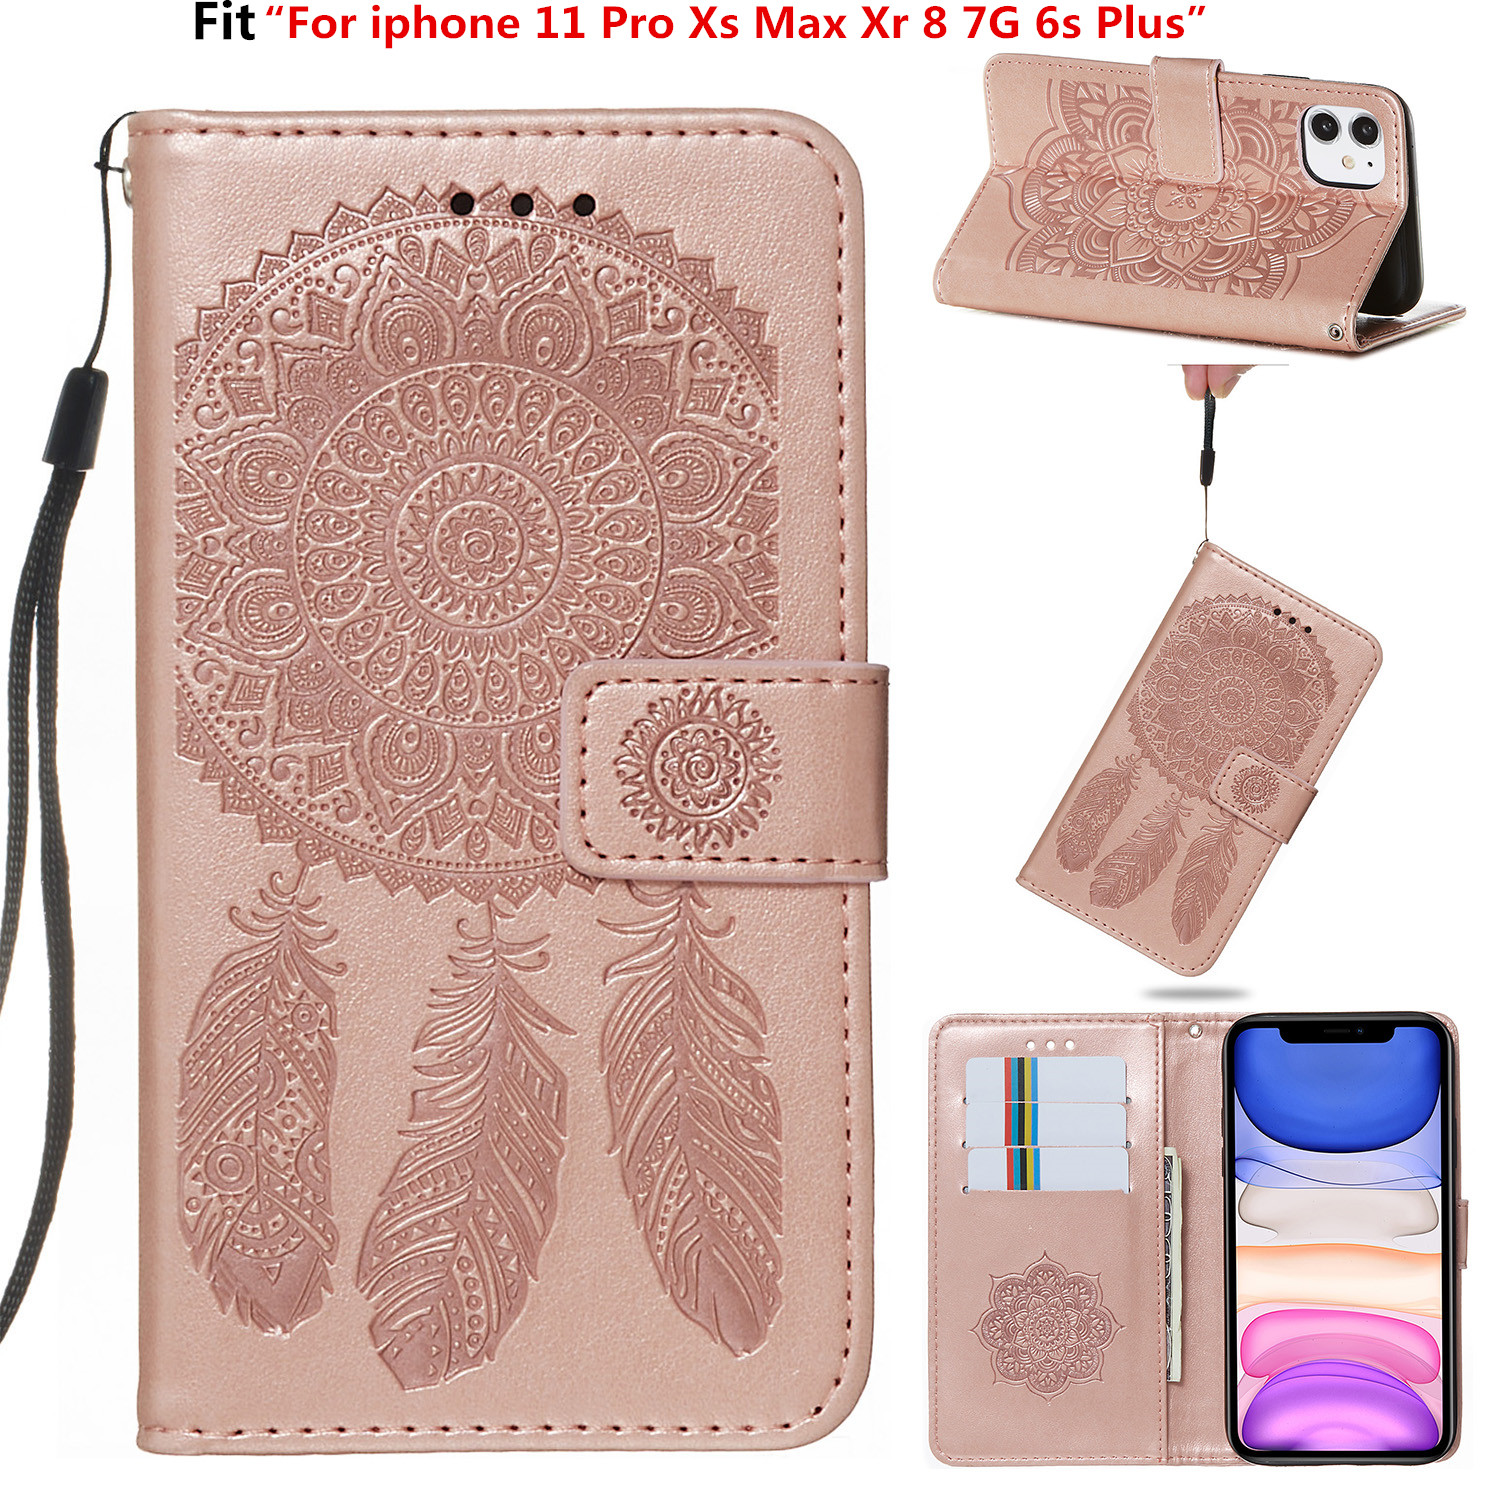 For iphone 11 Pro Xs Max Xr 8 7G 6s Plus Luxury Retro printing Campanula Flower PU leather case Wallet Flip Stand cover Coque image